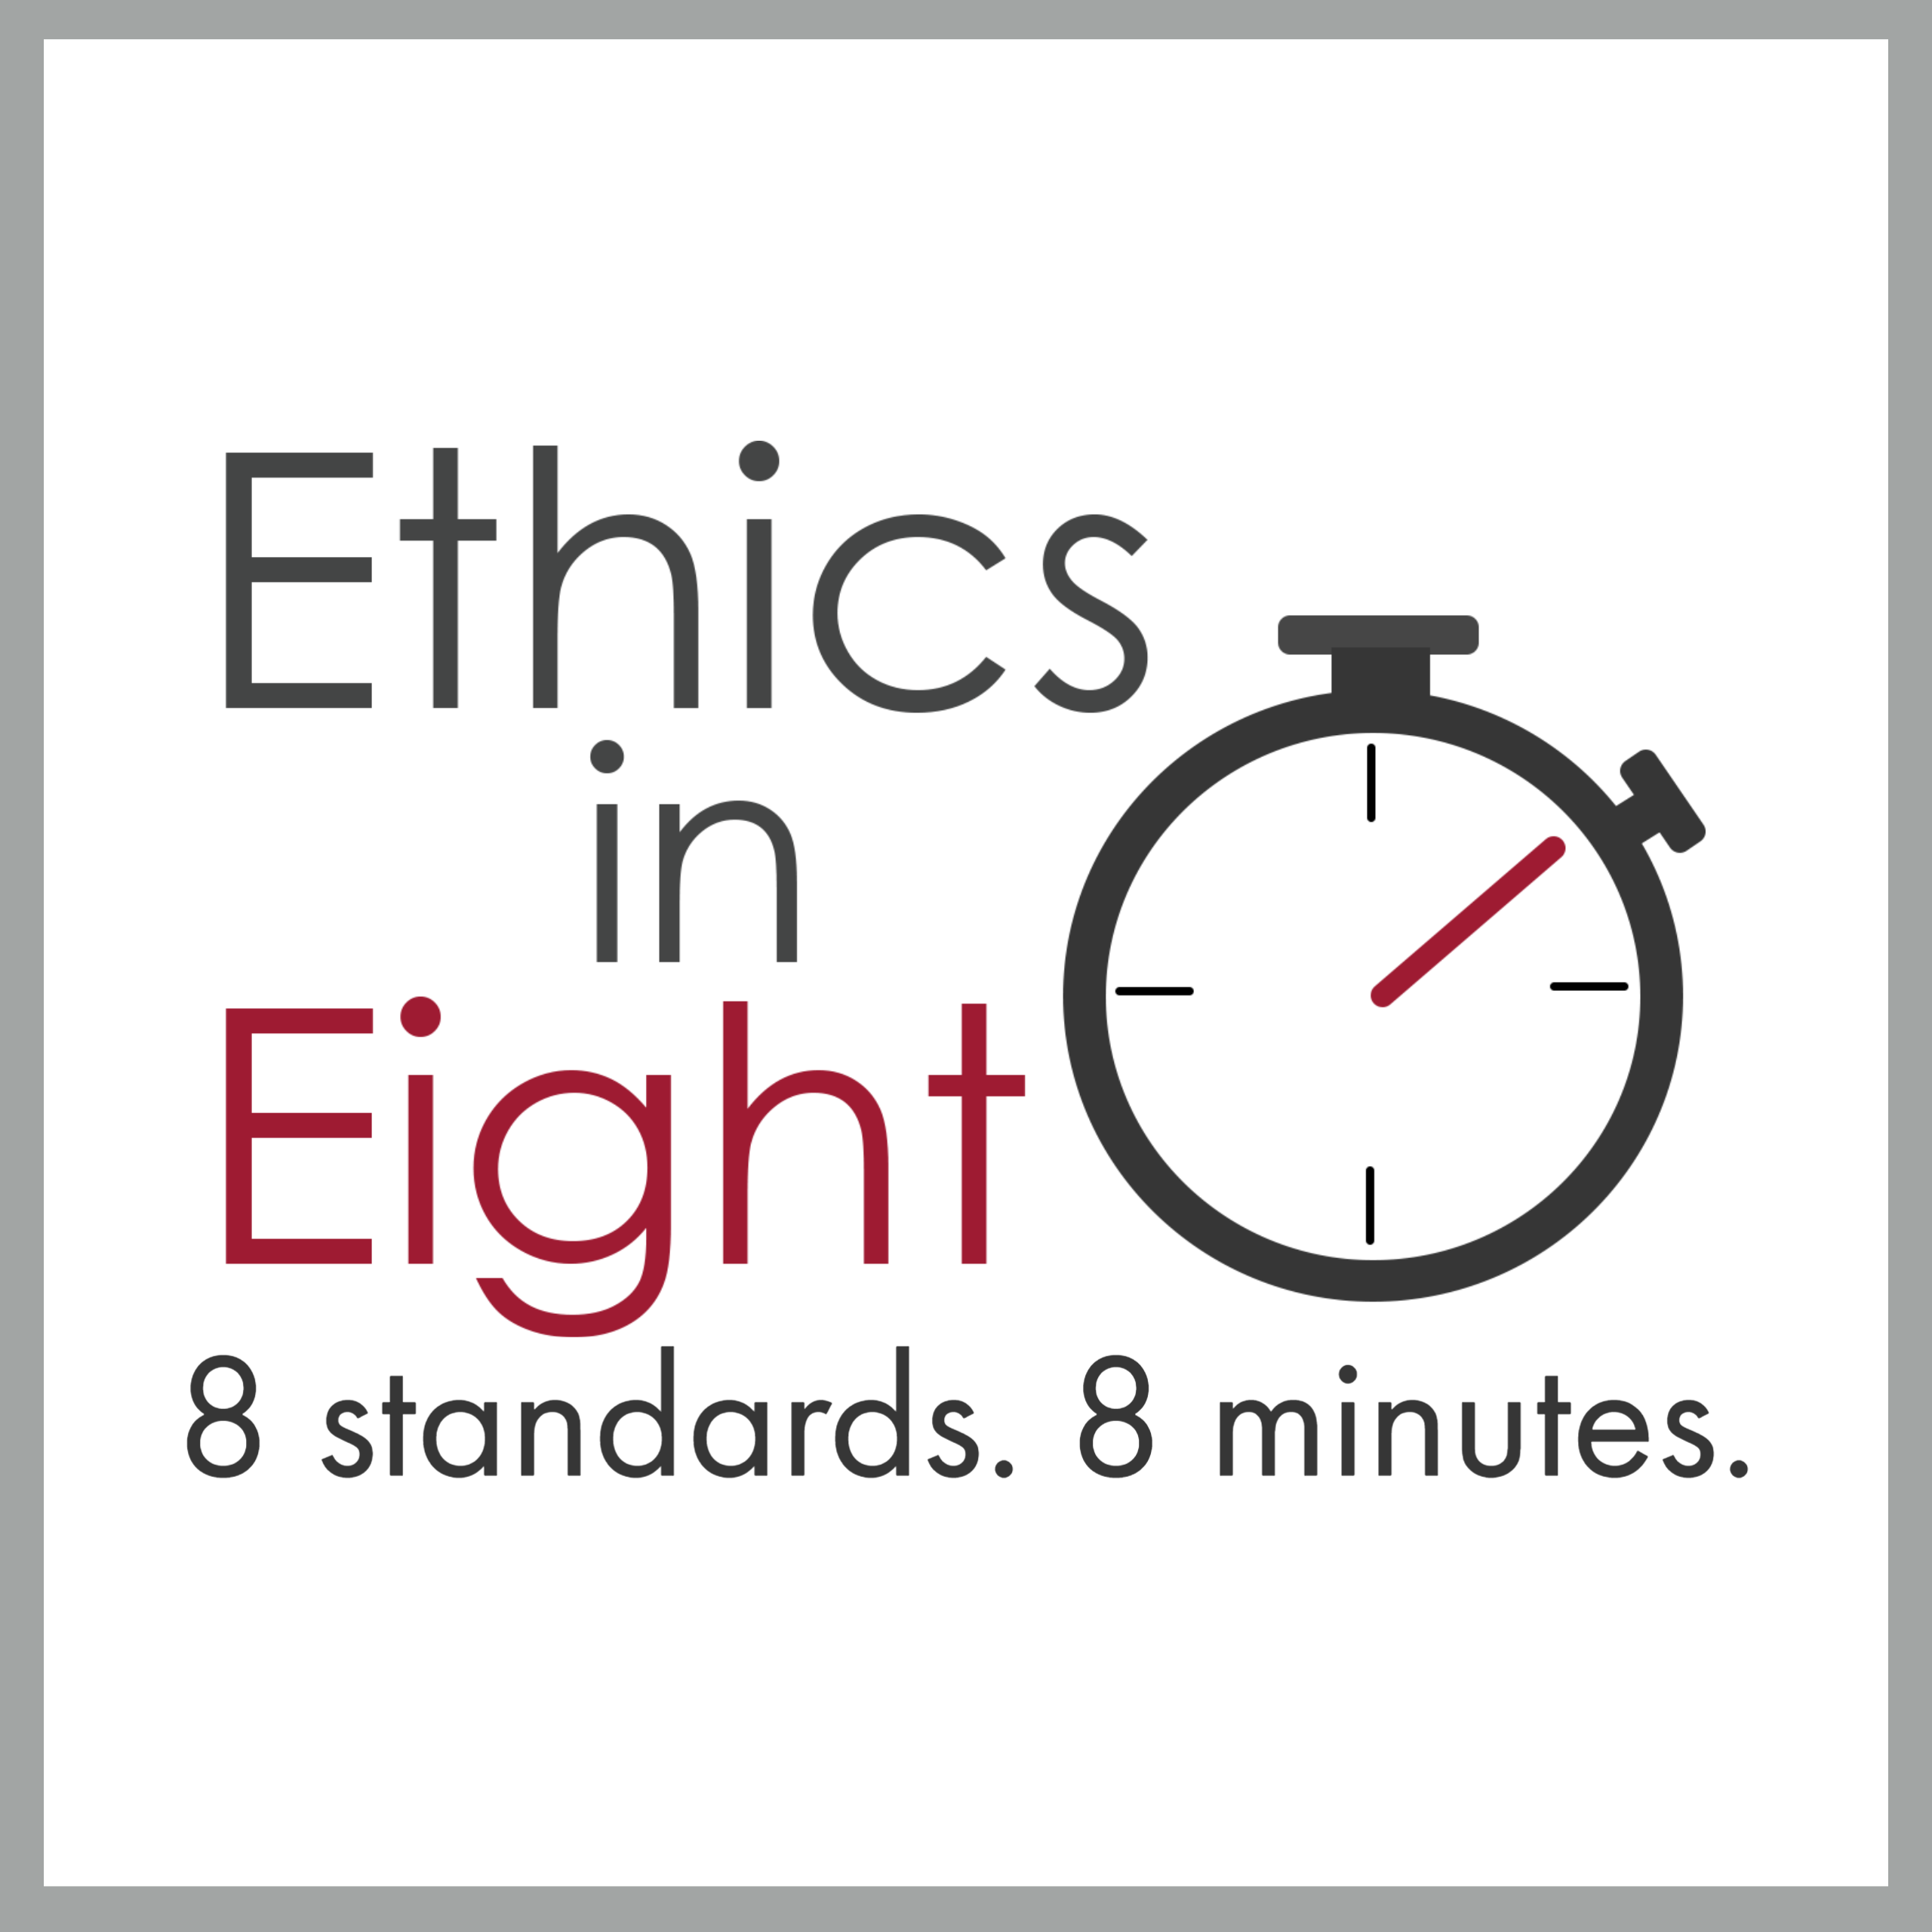 Ethics in Eight - 8 standards. 8 minutes.